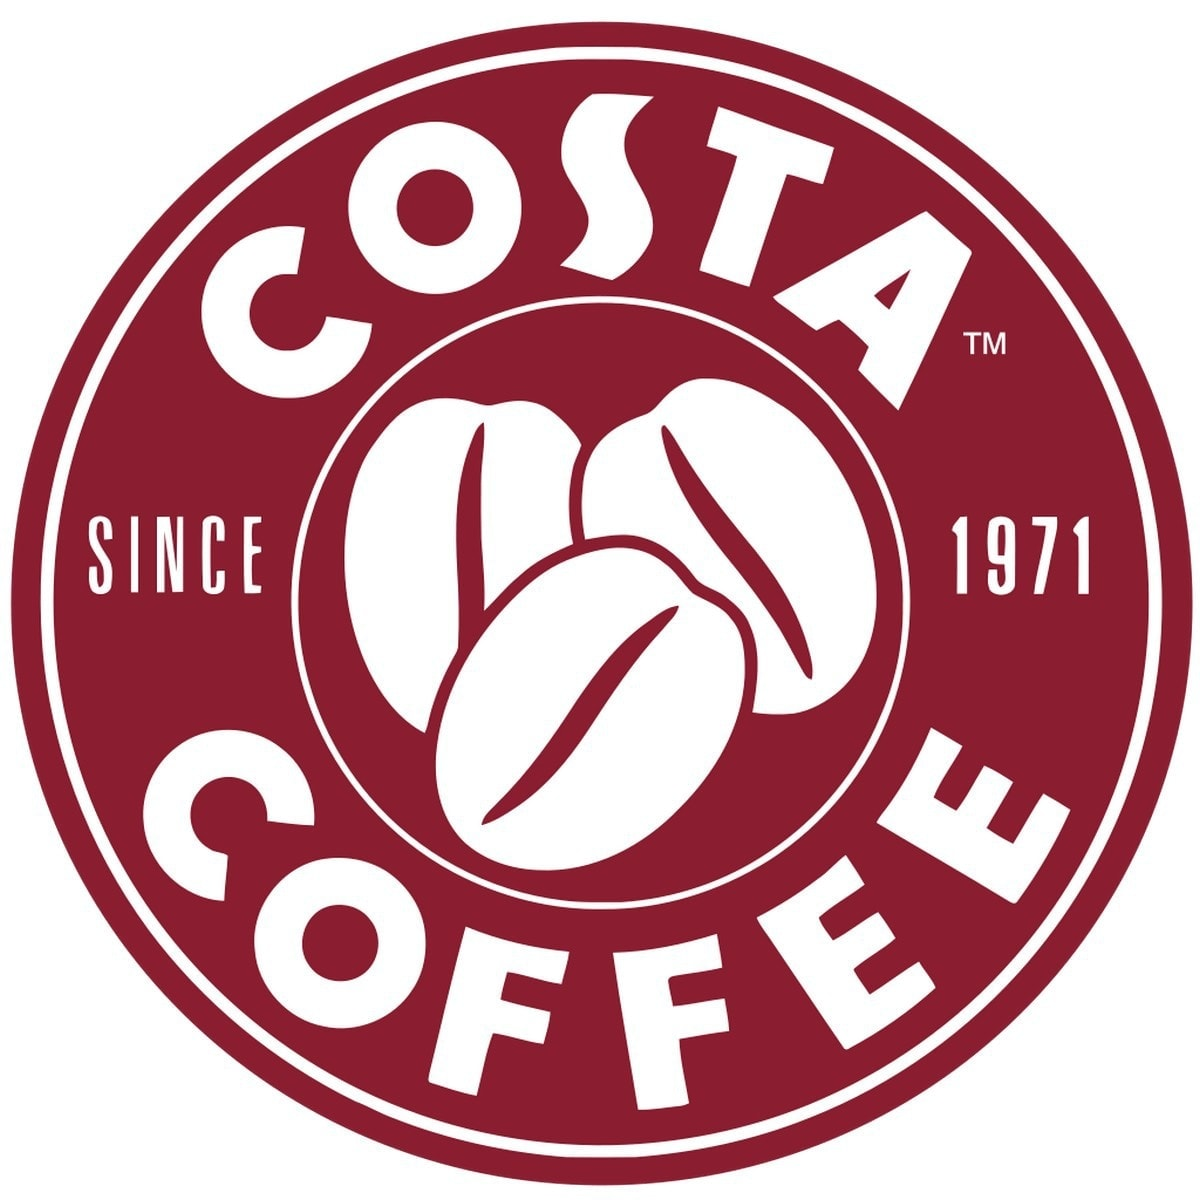 Marketing mix of Costa Coffee